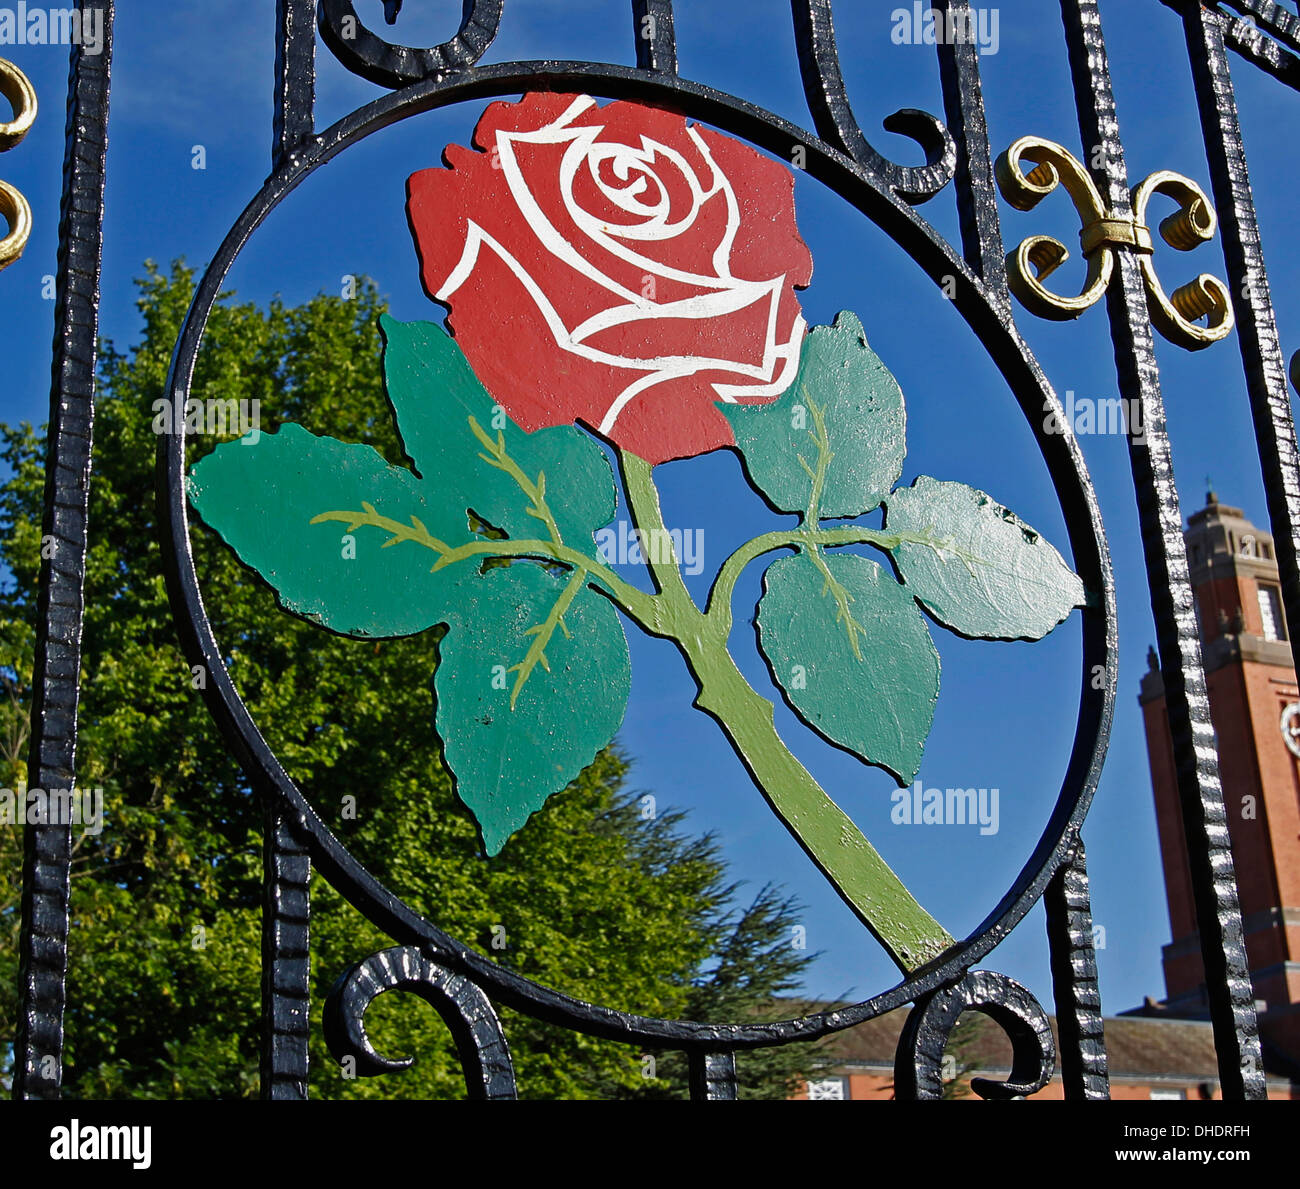 The Lancashire Red Rose on the entrance gates at Emirates Old Trafford Cricket Ground in Manchester against a very blue sky - Stock Image